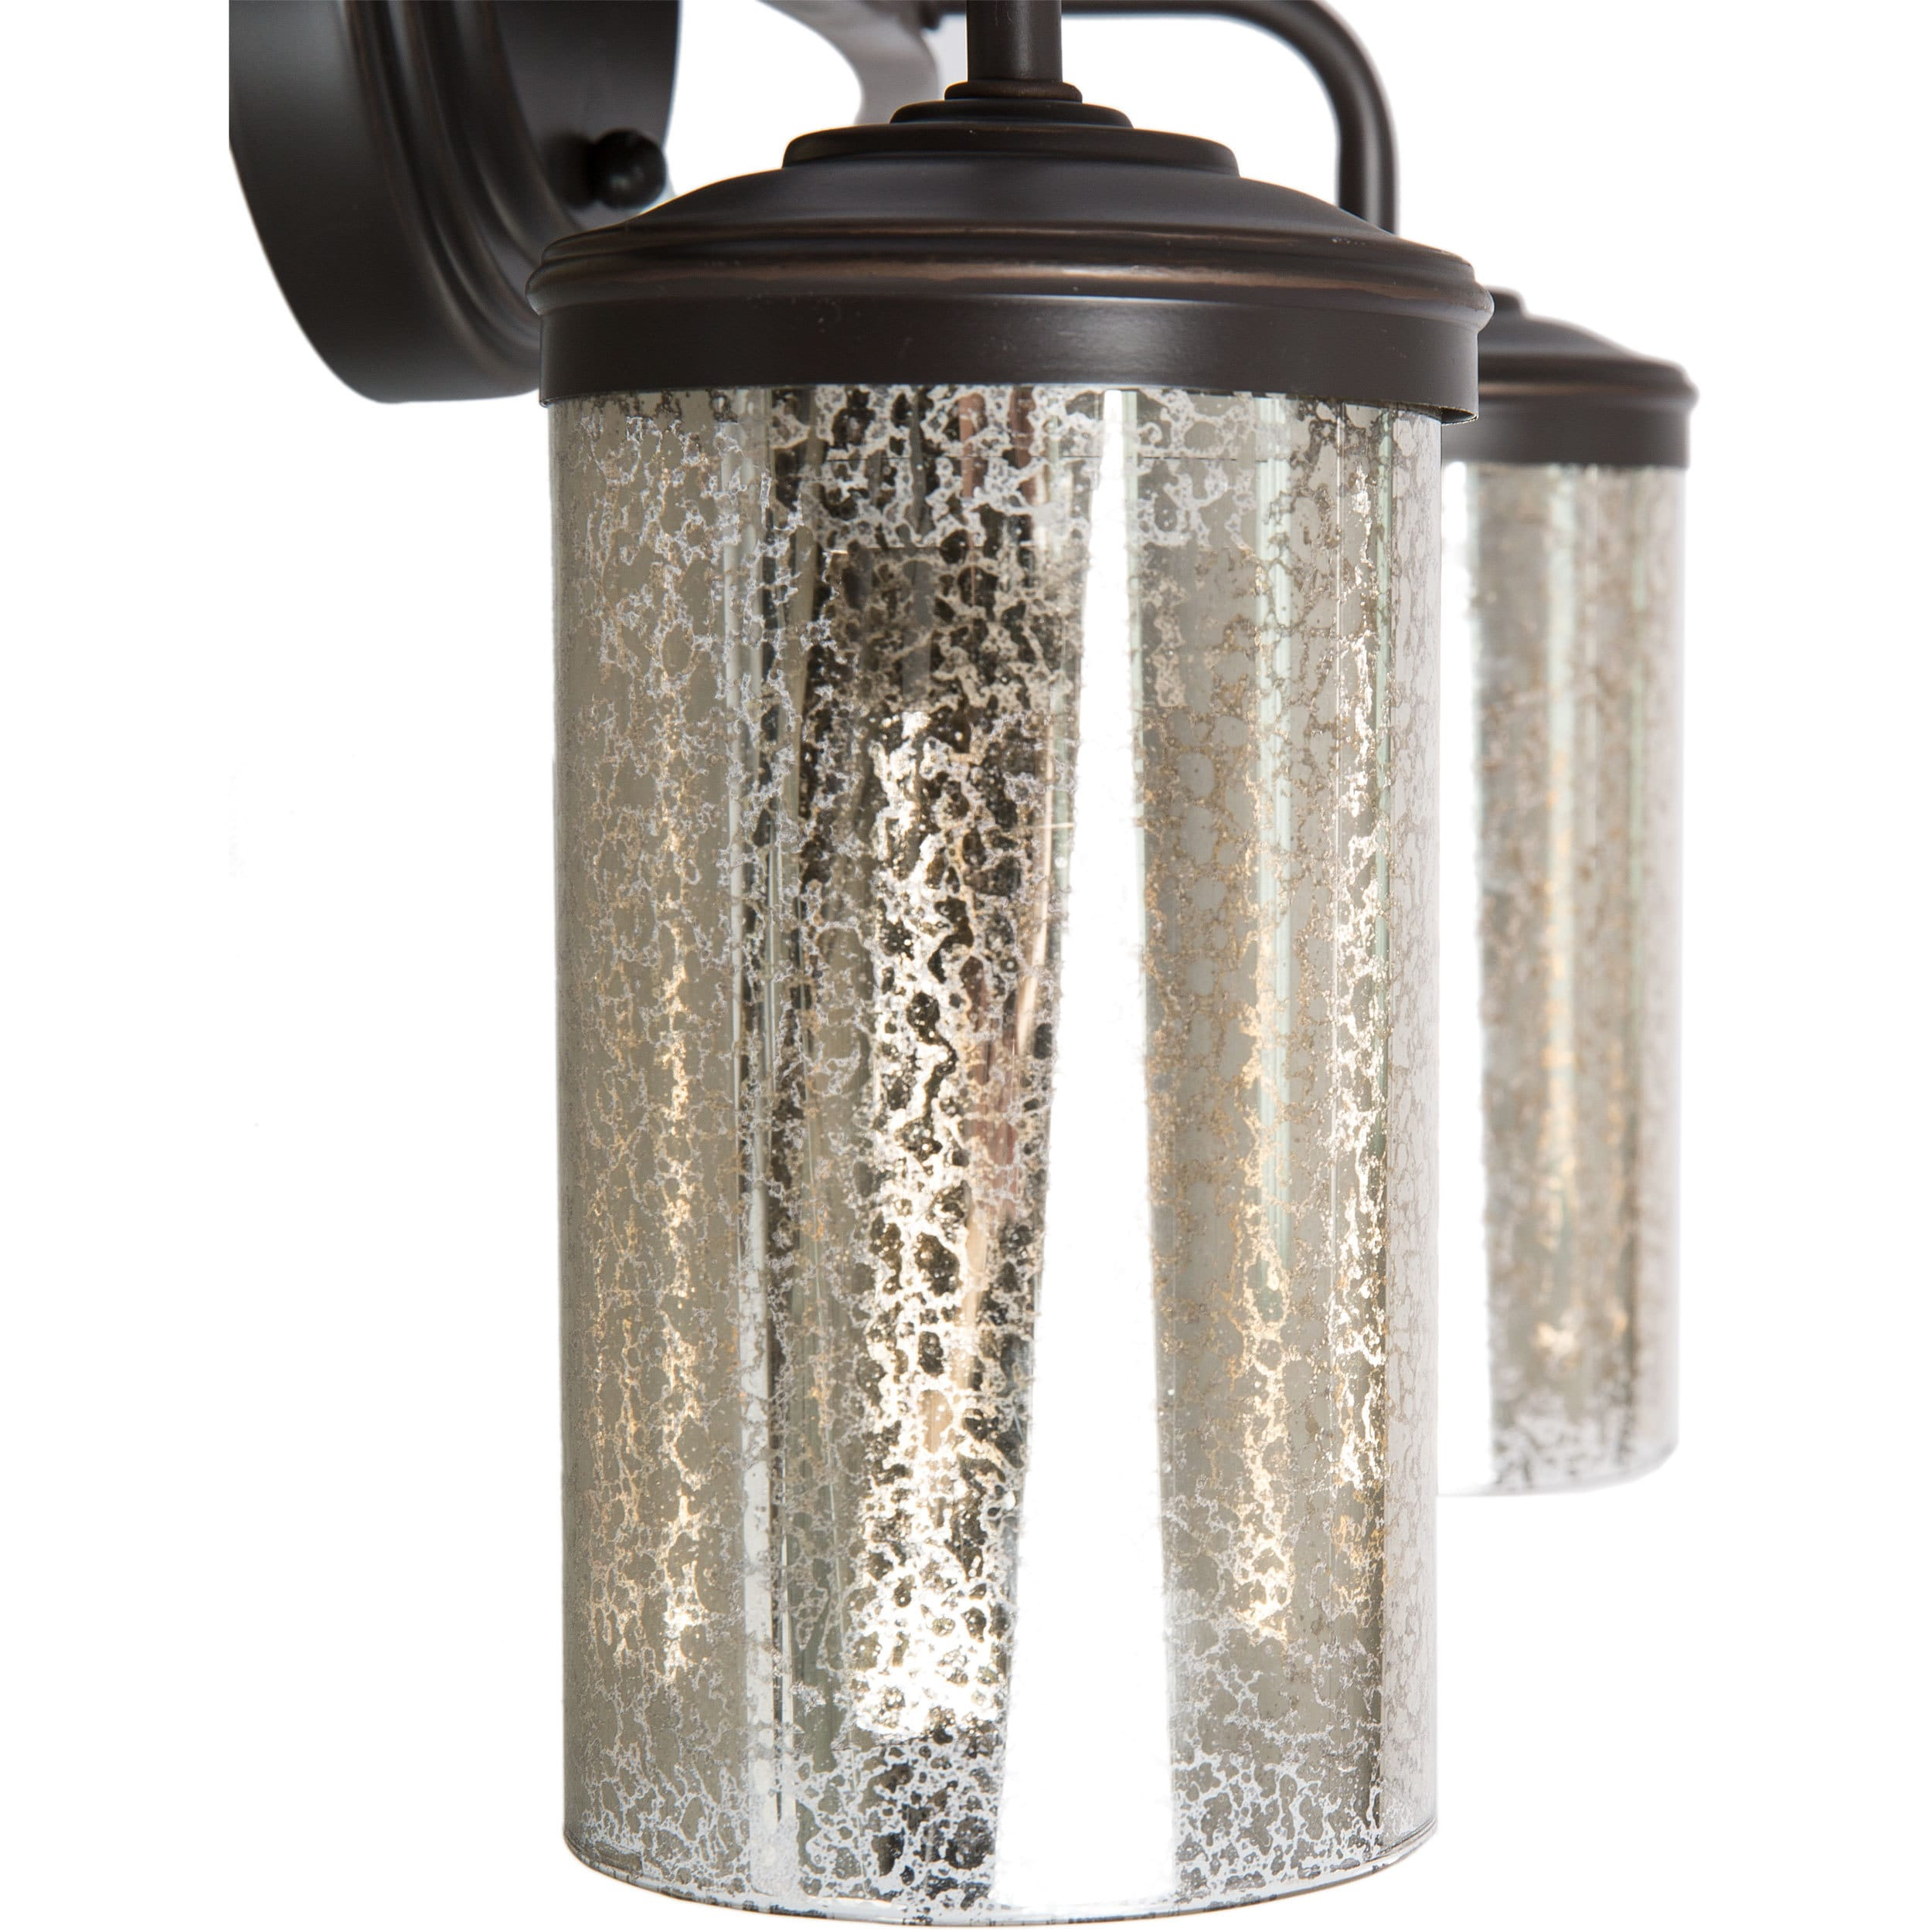 rubbed glass pin triangle oil bronze pan with mercury hammered fixture in light fixtures